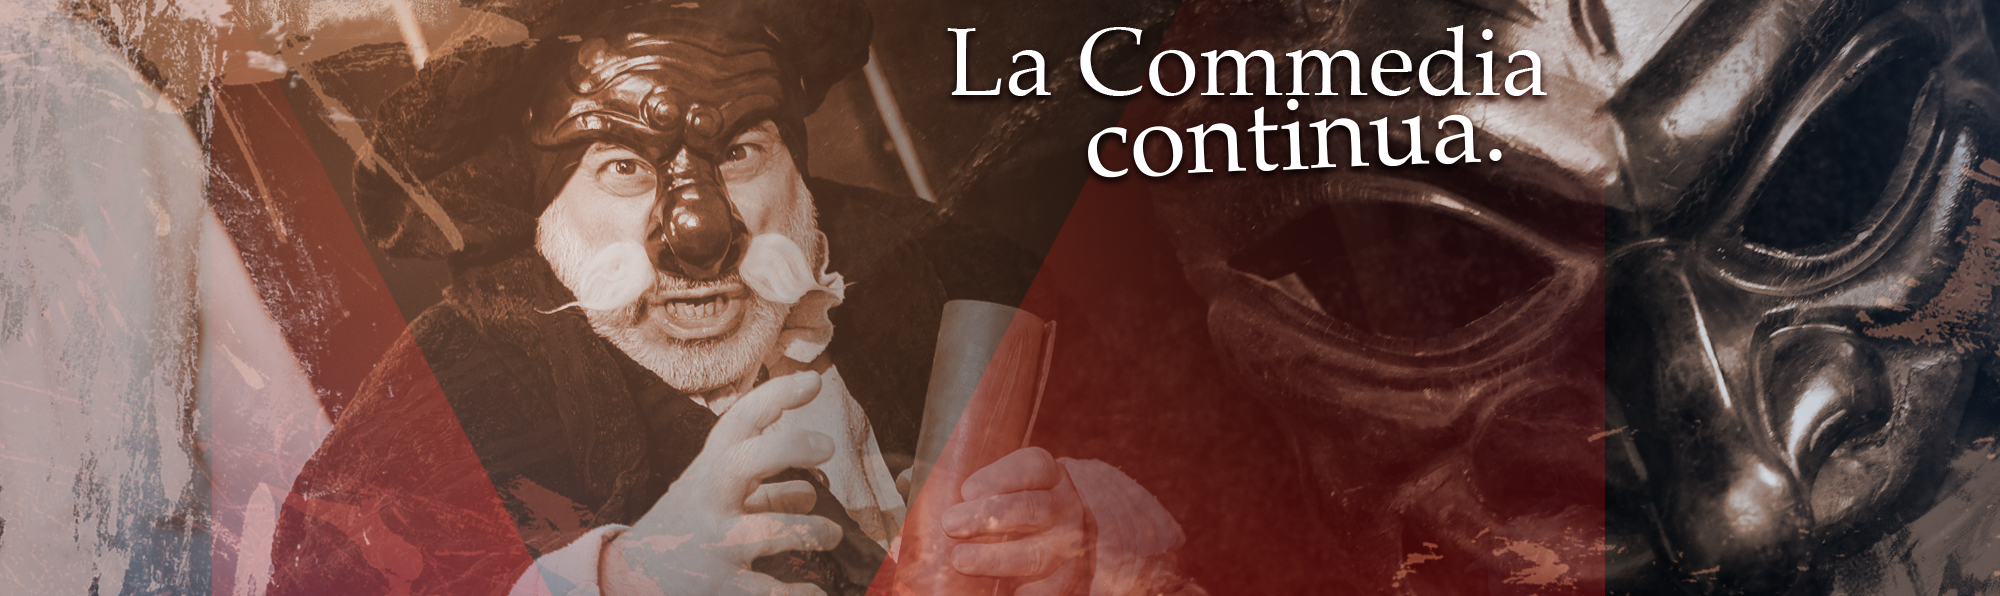 Commedia Dell'arte Word Meaning Arscomica The Commedia Must Go On